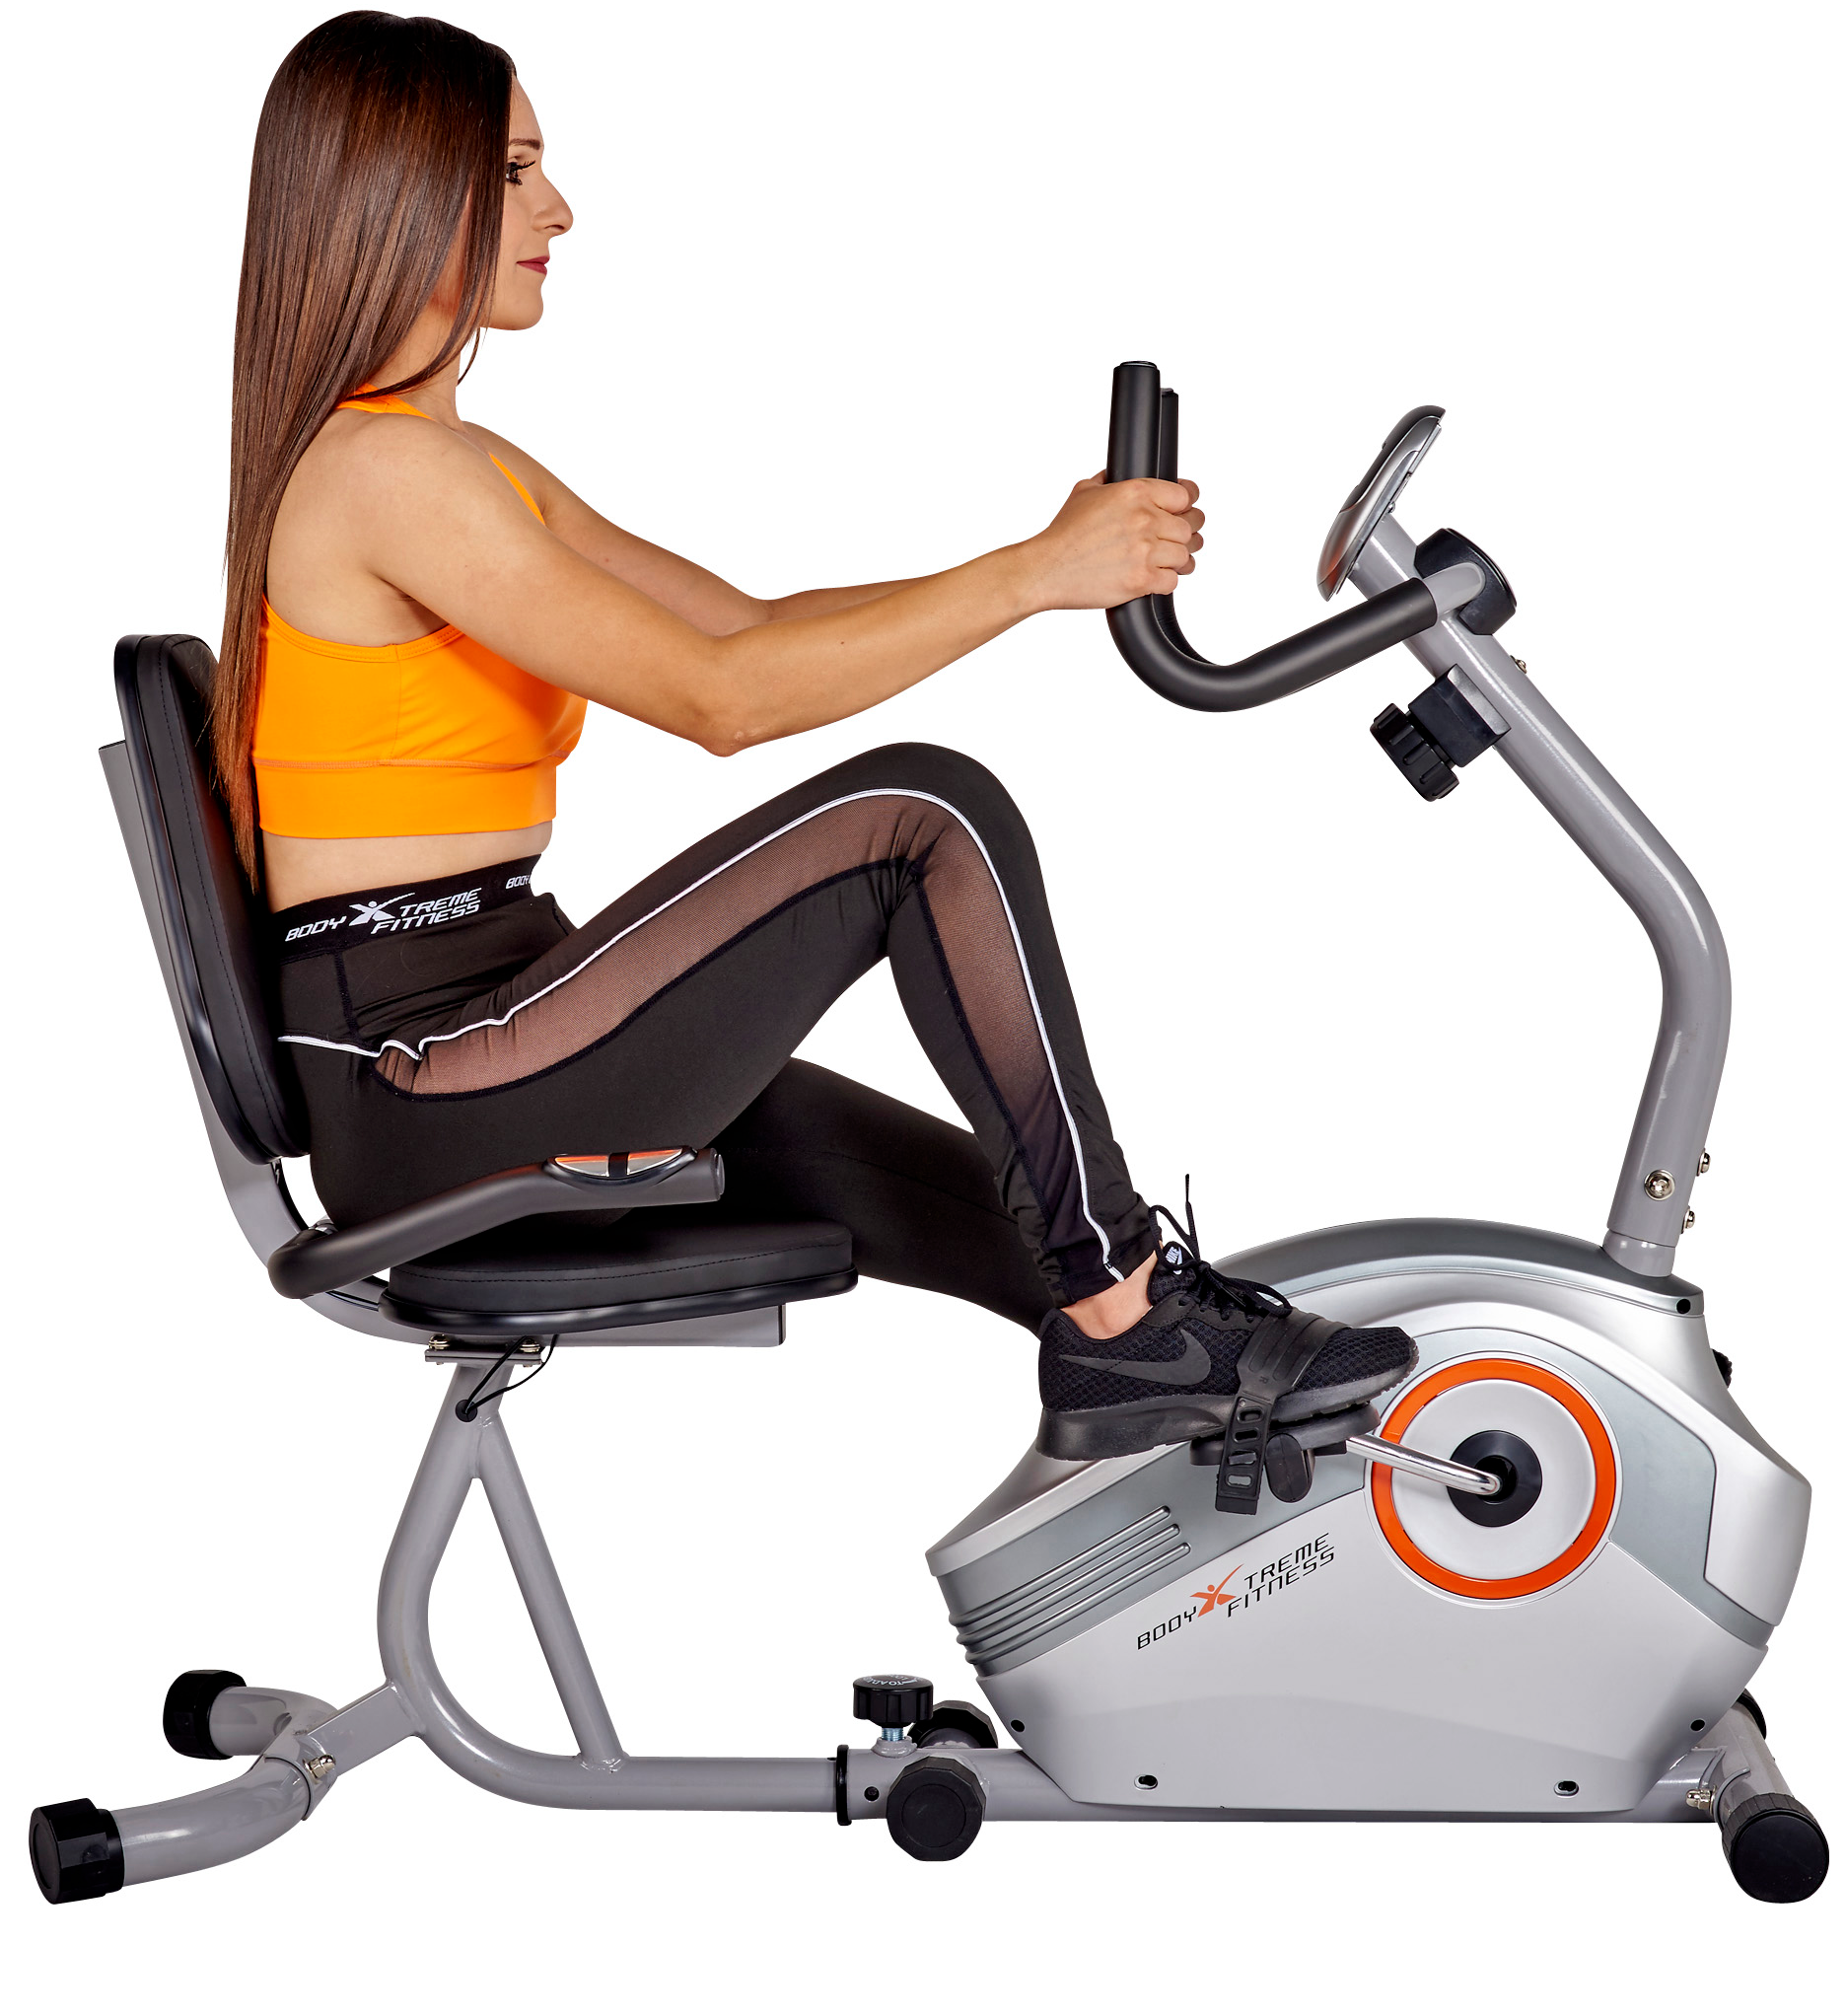 Body Xtreme Fitness Magnetic Recumbent Exercise Bike, Pulse Sensors